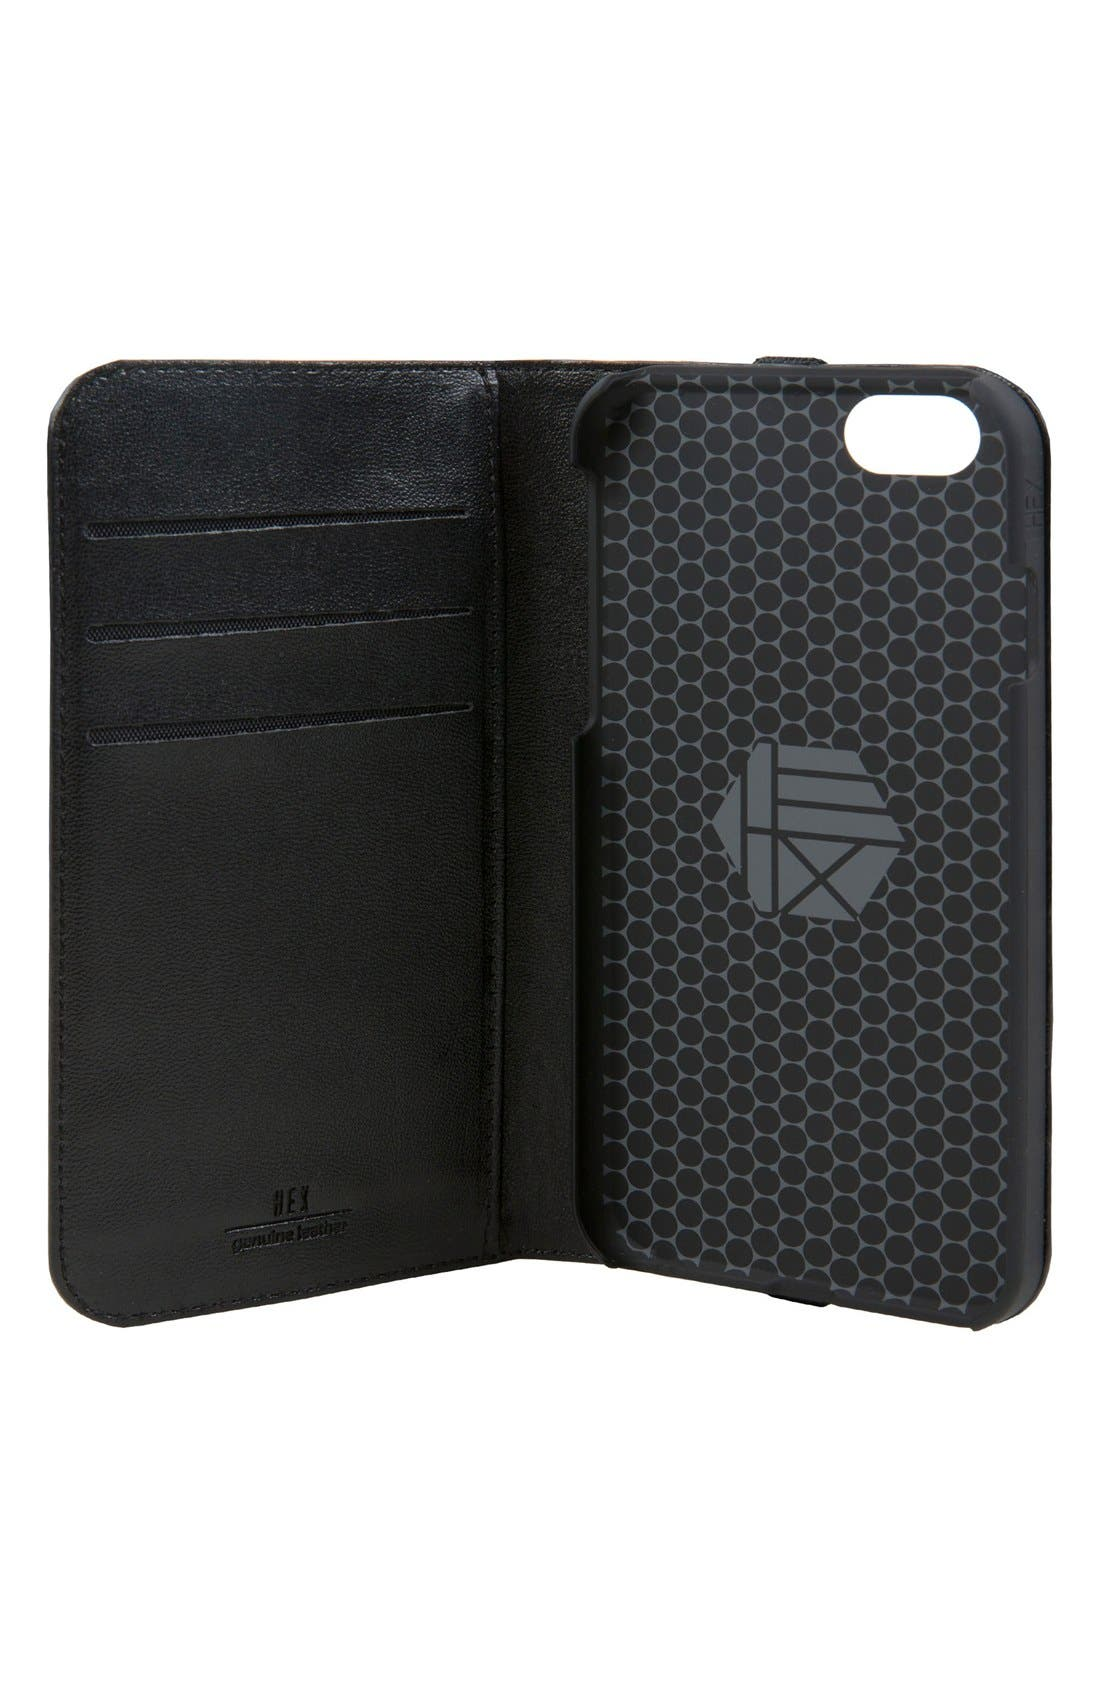 Icon iPhone 7/8 Case & Wallet,                             Alternate thumbnail 3, color,                             001